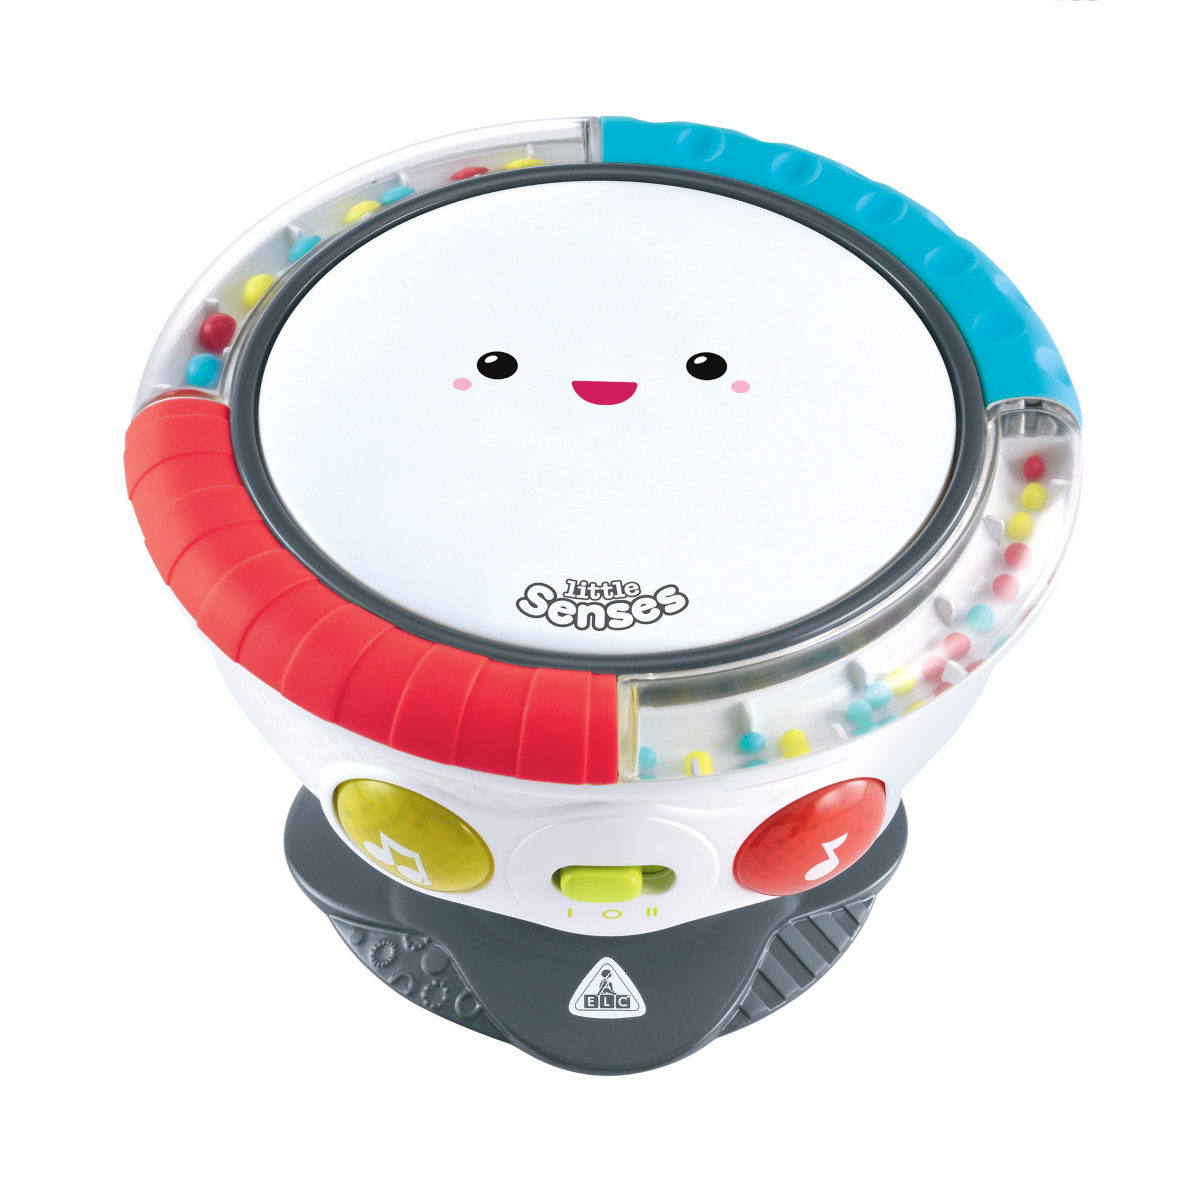 Little Senses Baby Drum from Early Learning Center